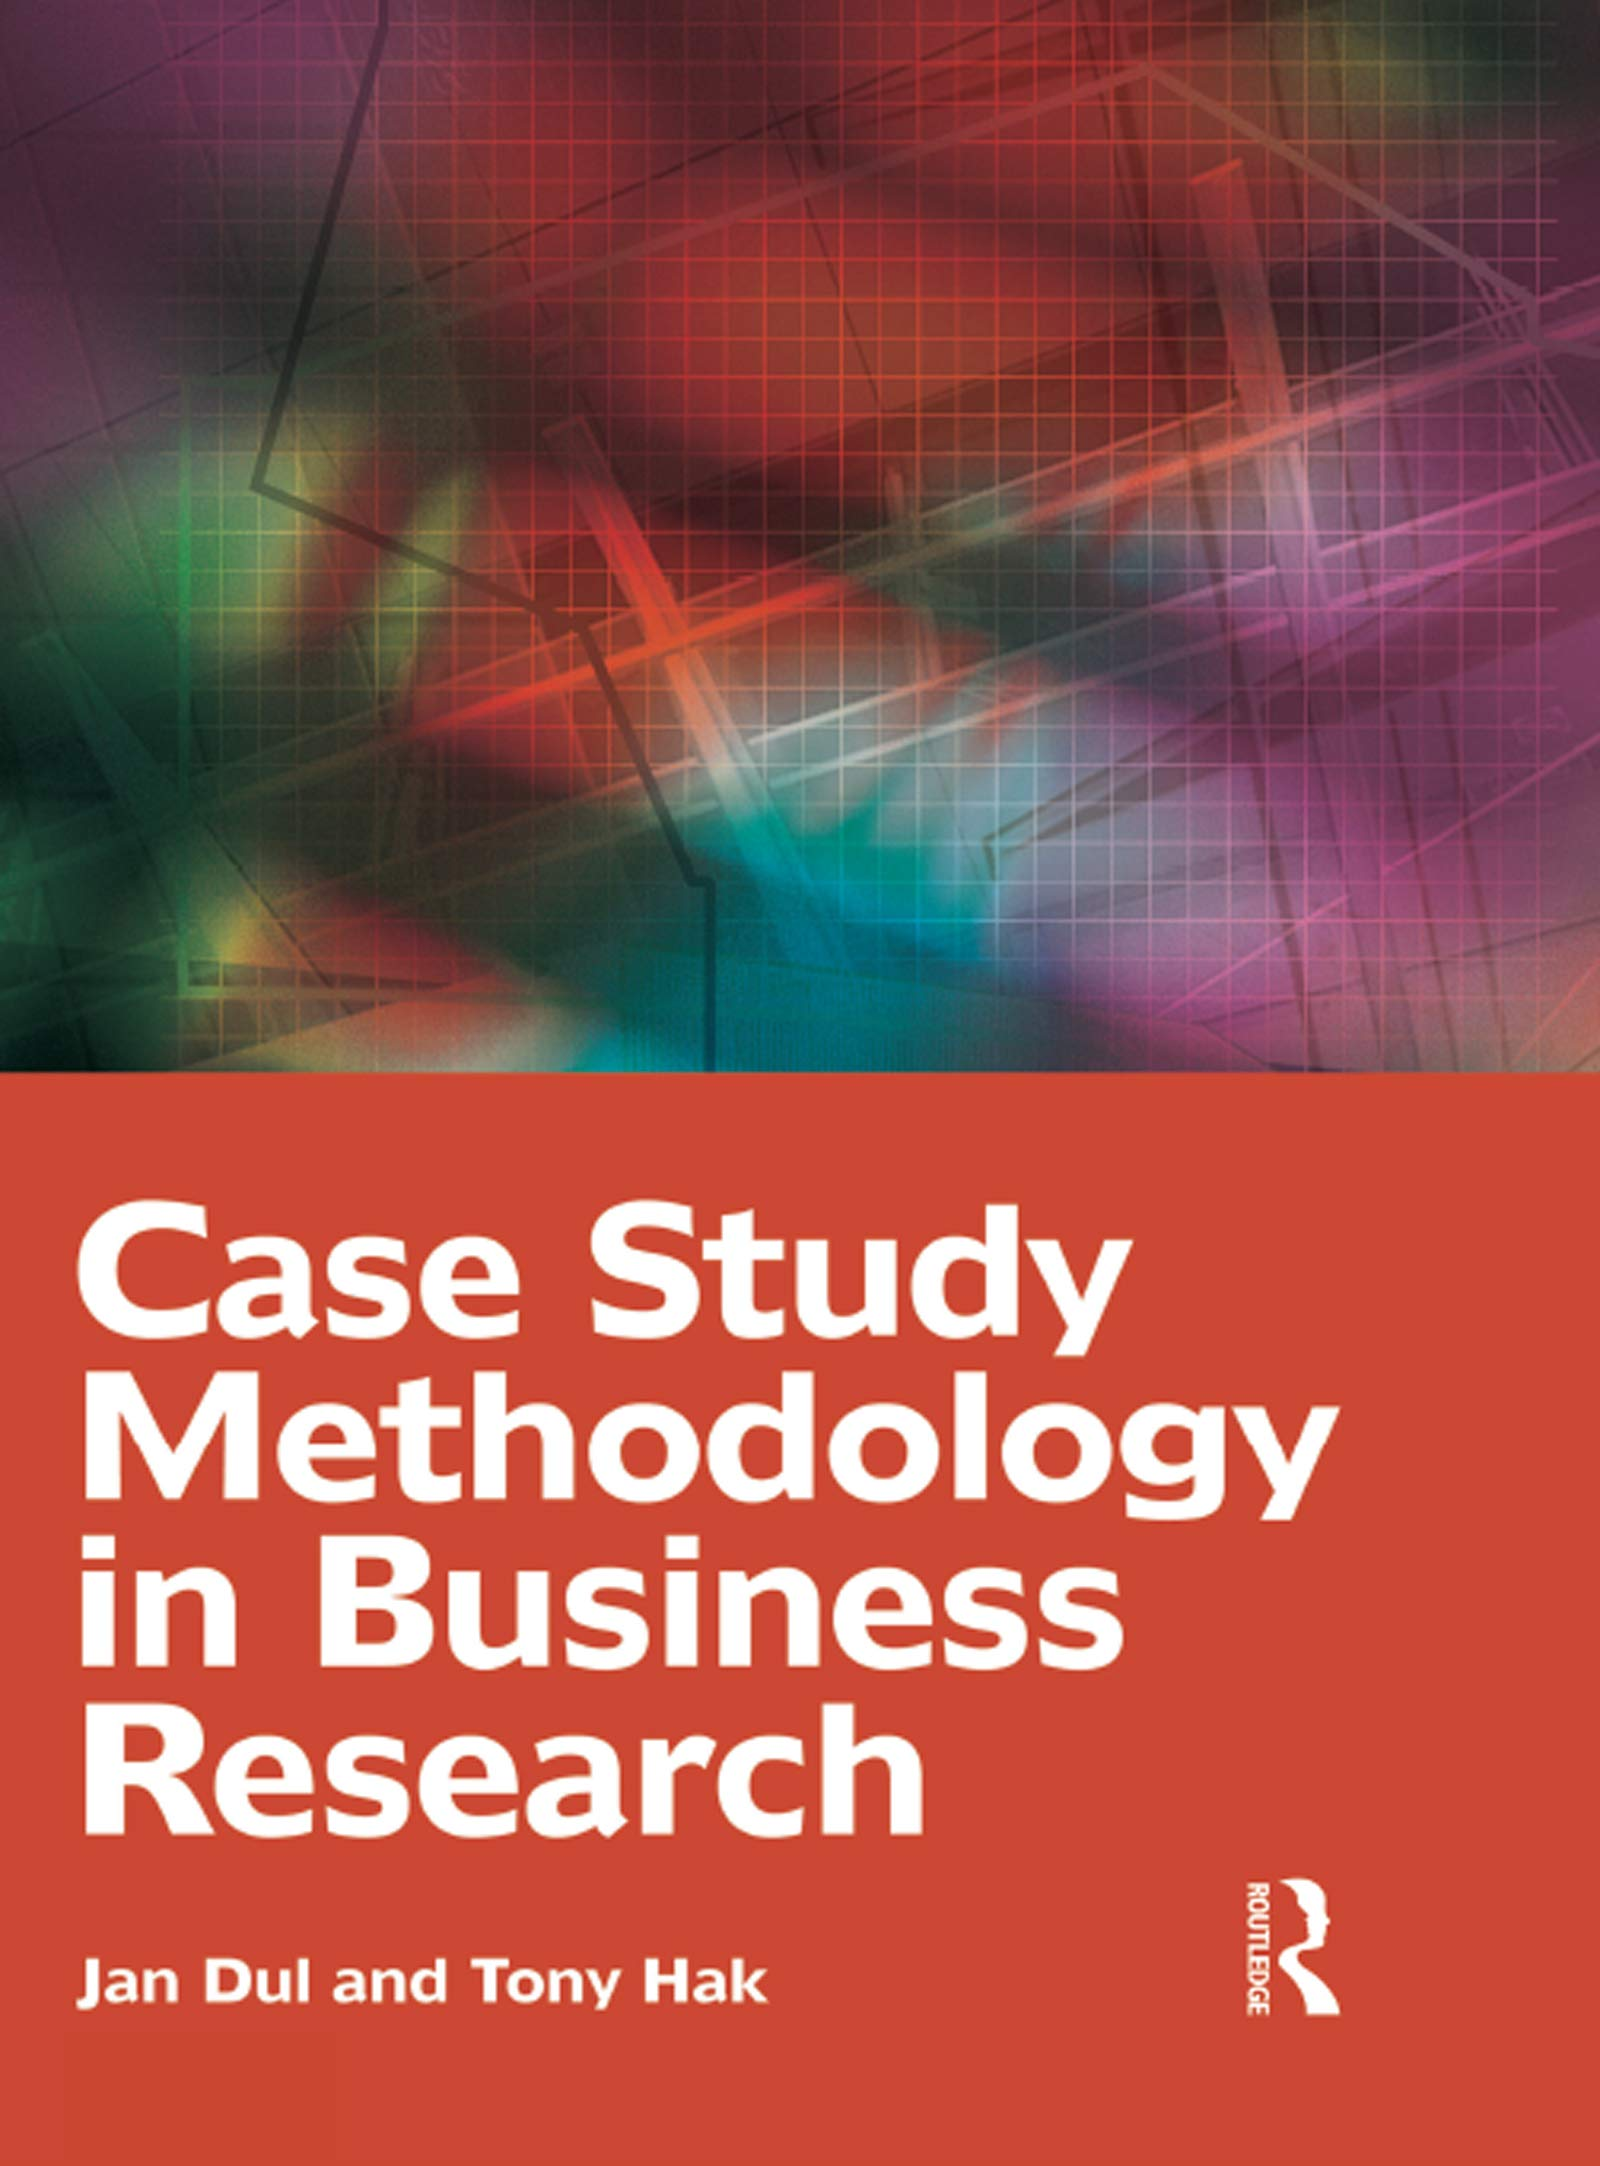 How Case Study Method Is Useful To Business Research